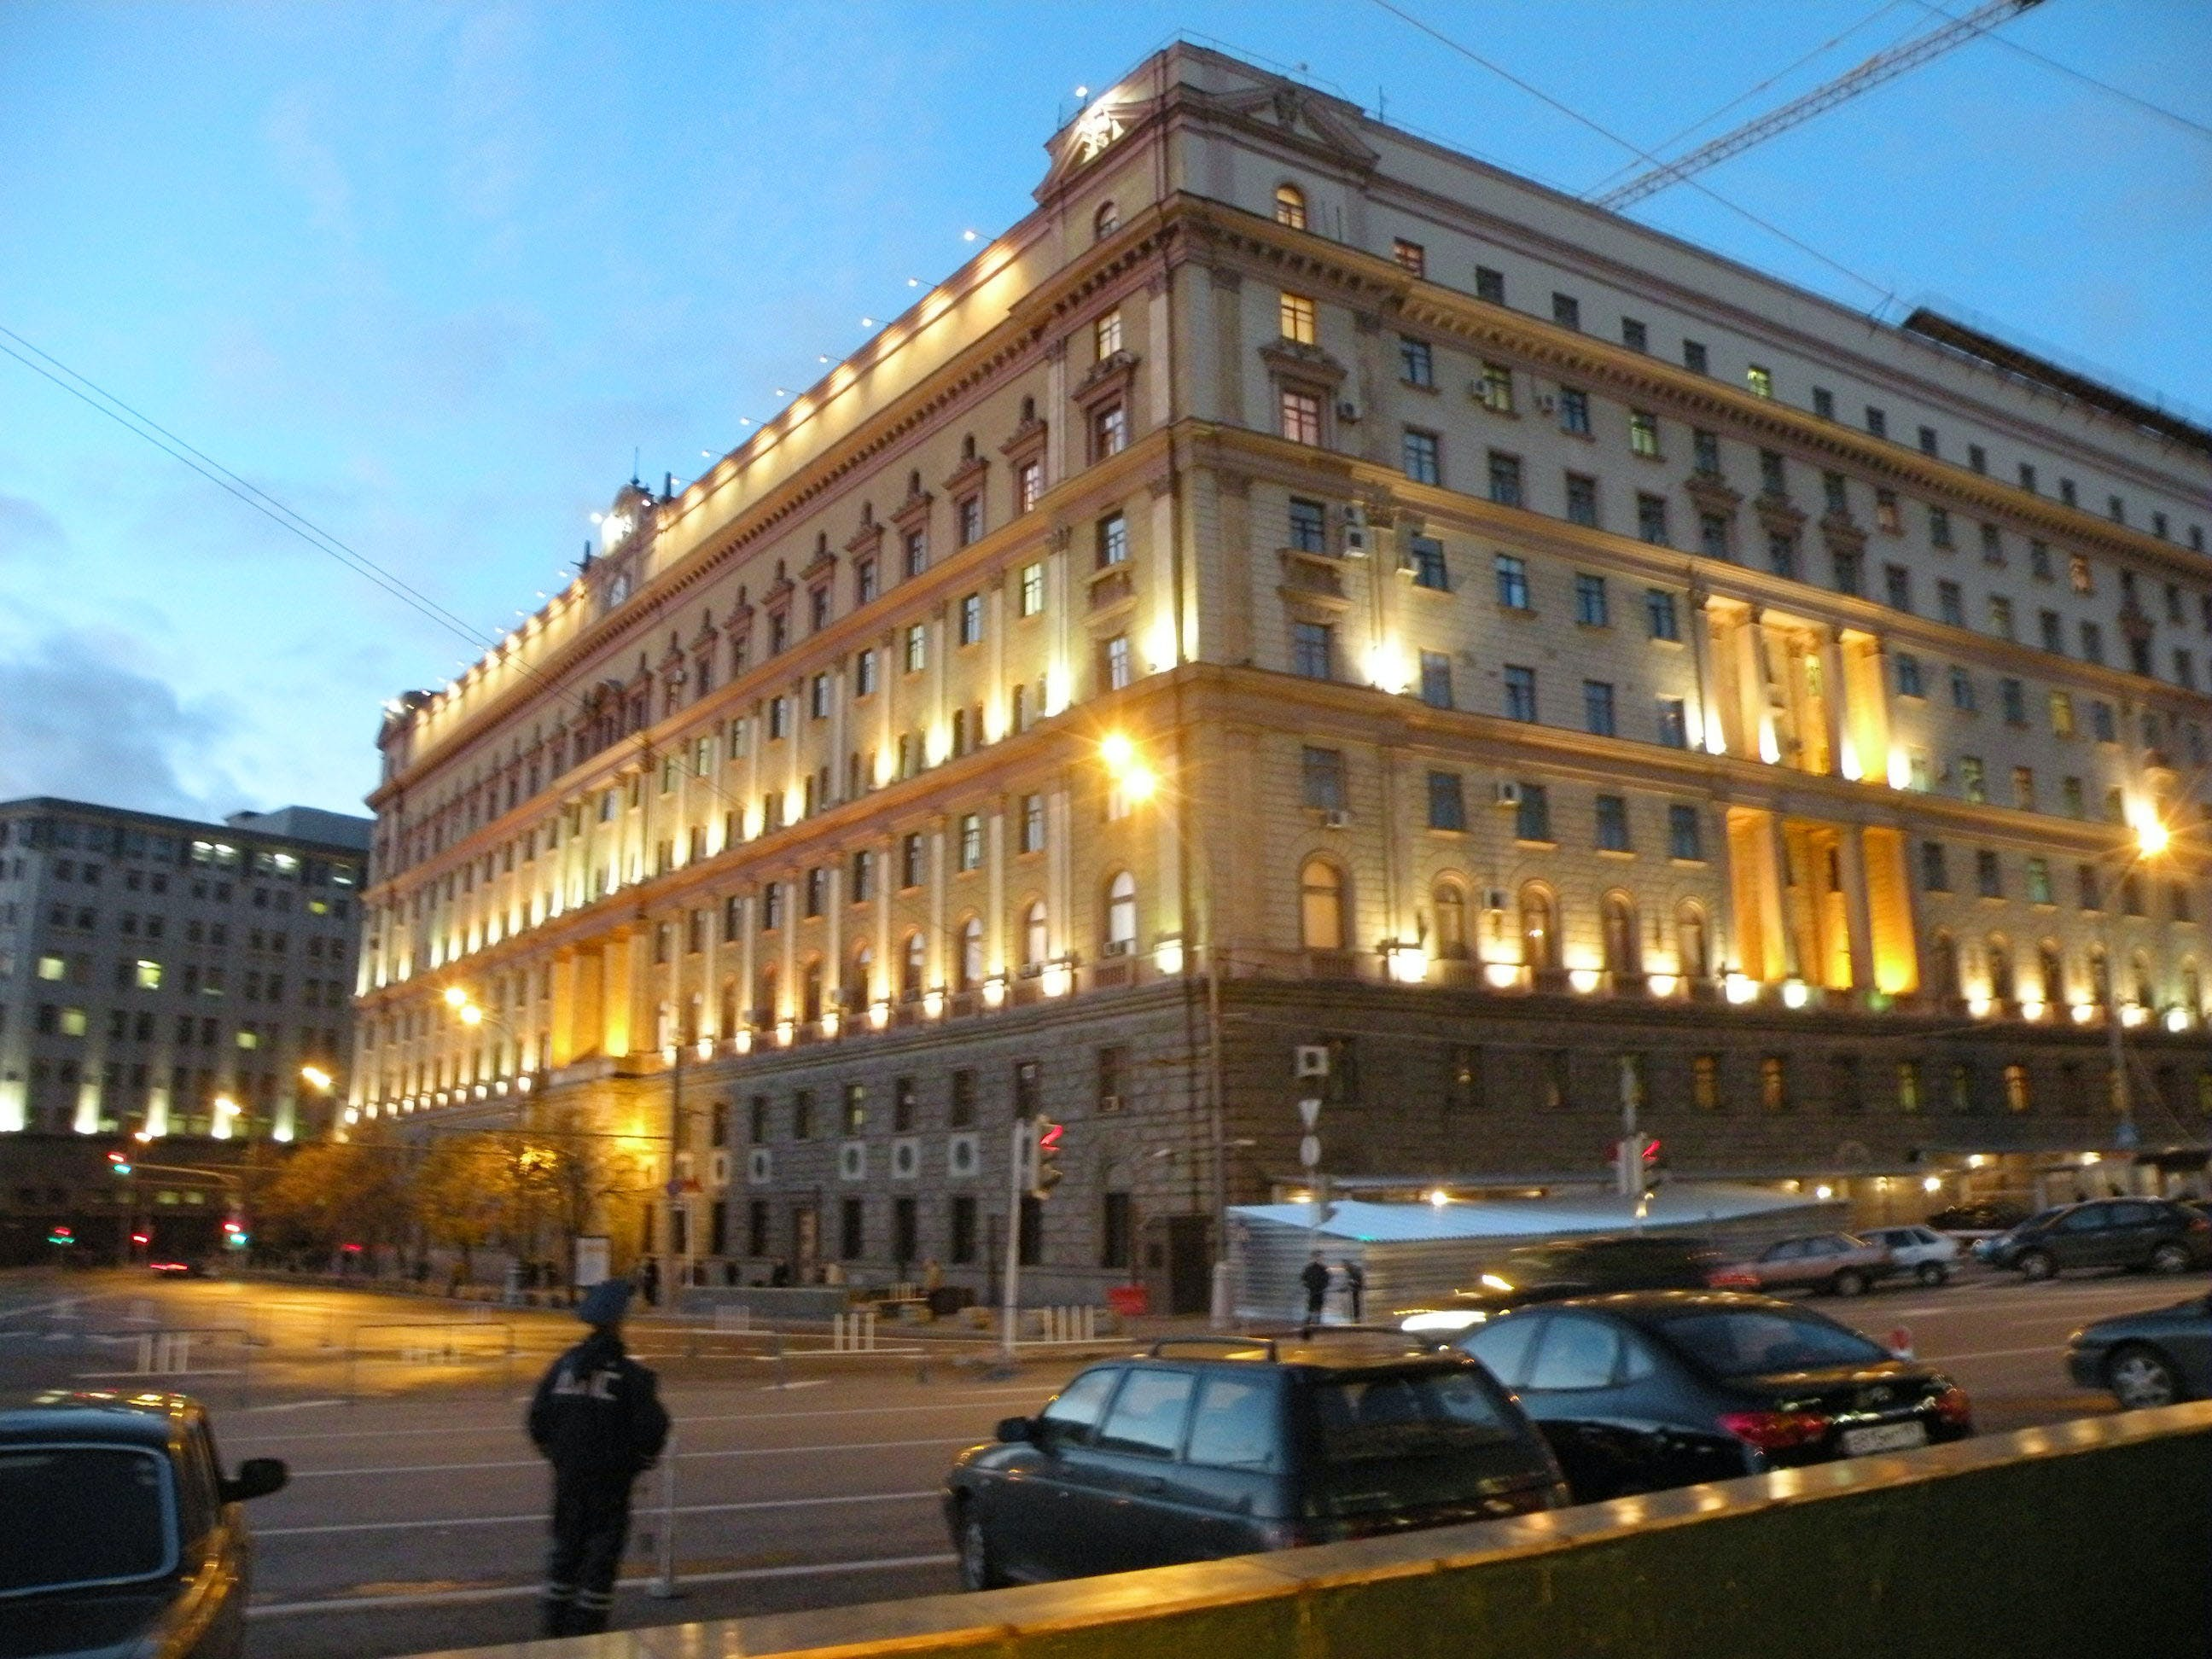 TOKYO, Japan - The former KGB headquarters in Moscow is photographed in October 2011. The Russian government has been linked to cyber attacks on Asian, American and European companies for alleged economic gains, according to a report released in January 2014 by CrowdStrike Inc., a U.S. cybersecurity firm. An expert said persons connected to the Soviet KGB are suspected to be involved in cyber crimes. (Kyodo)